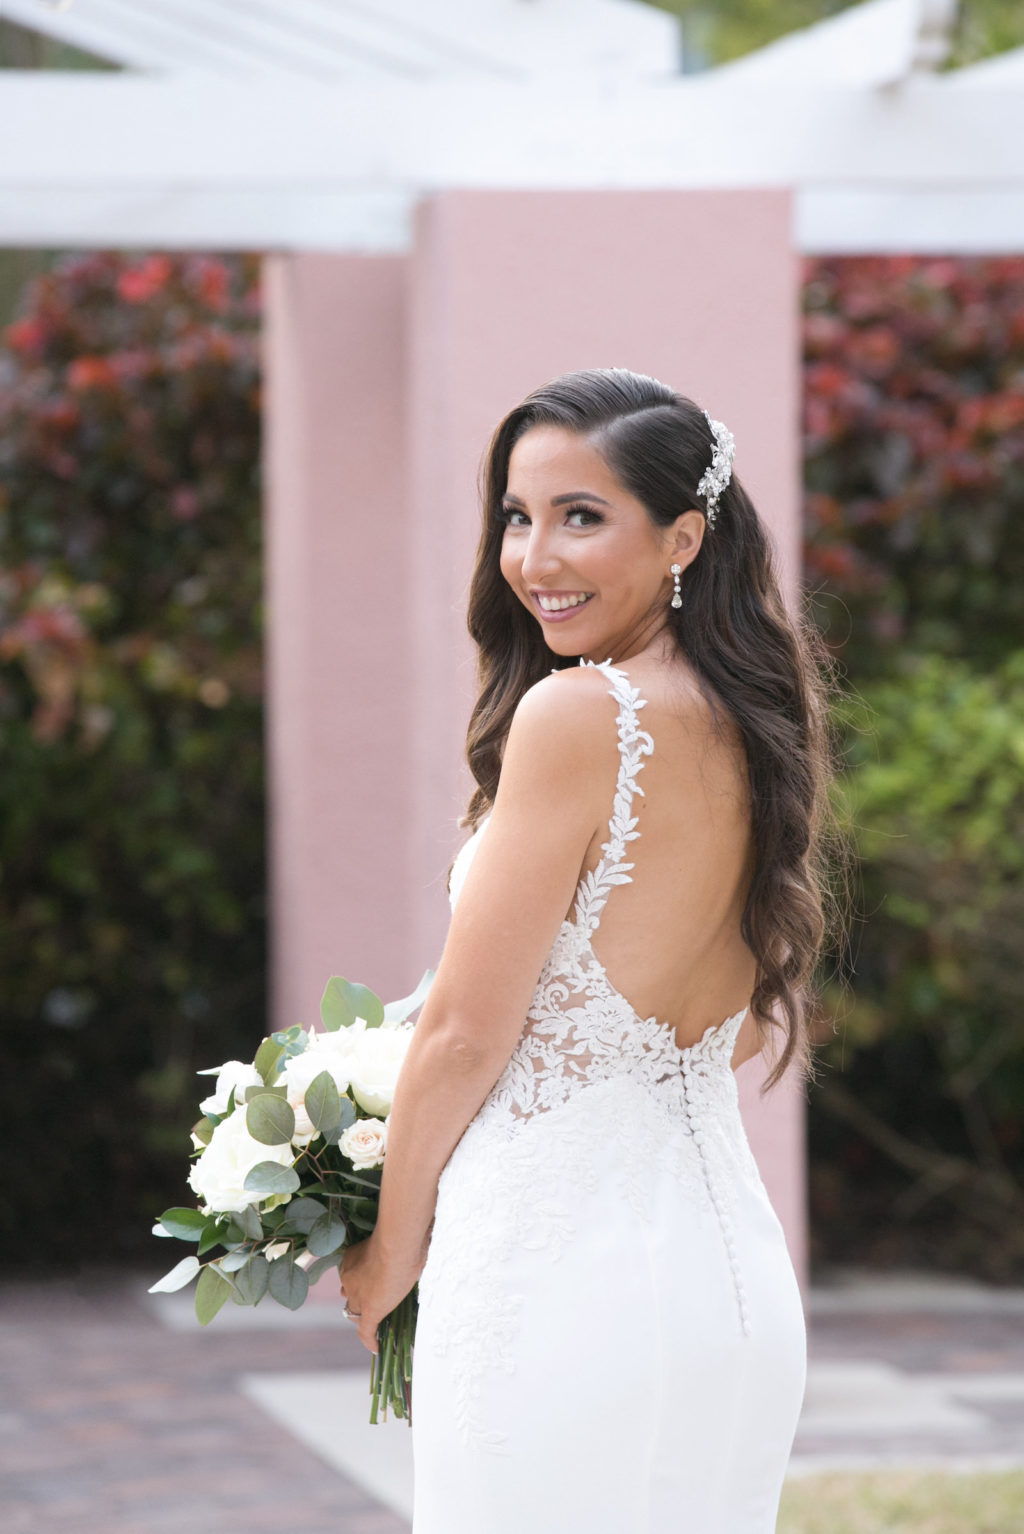 Elegant Bride in Romantic Open Back Floral Lace Straps, Illusion and Crepe Fitted Wedding Dress Holding White and Greenery Floral Bouquet | Tampa Bay Wedding Photographer Carrie Wildes Photography | Wedding Dress Shop Isabel O'Neil Bridal Collection